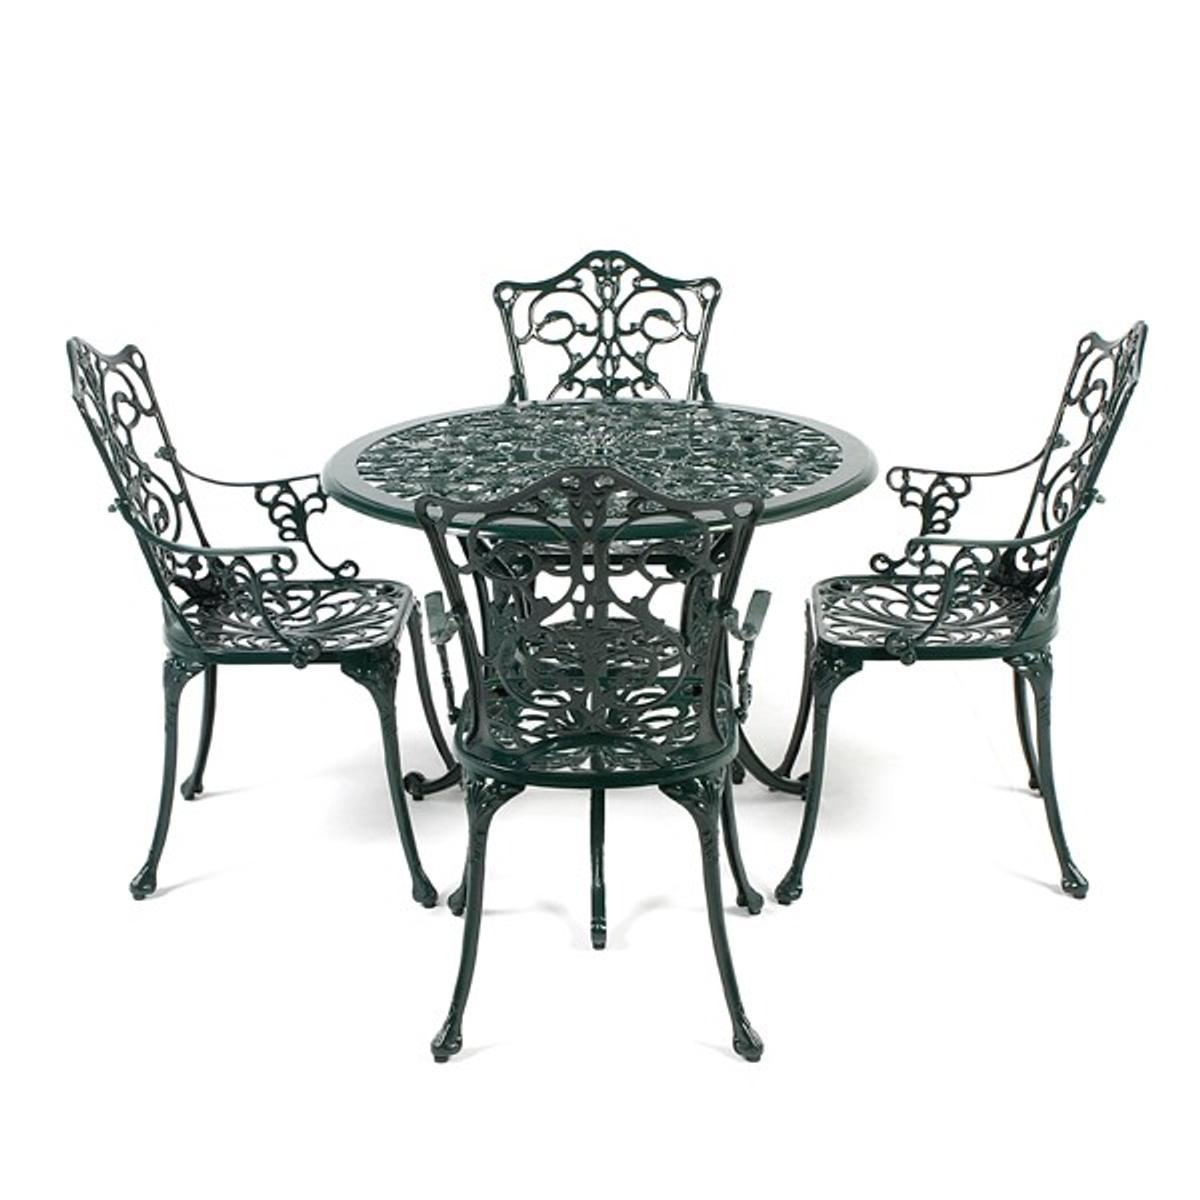 Ornate Cast Iron Patio Table Chairs